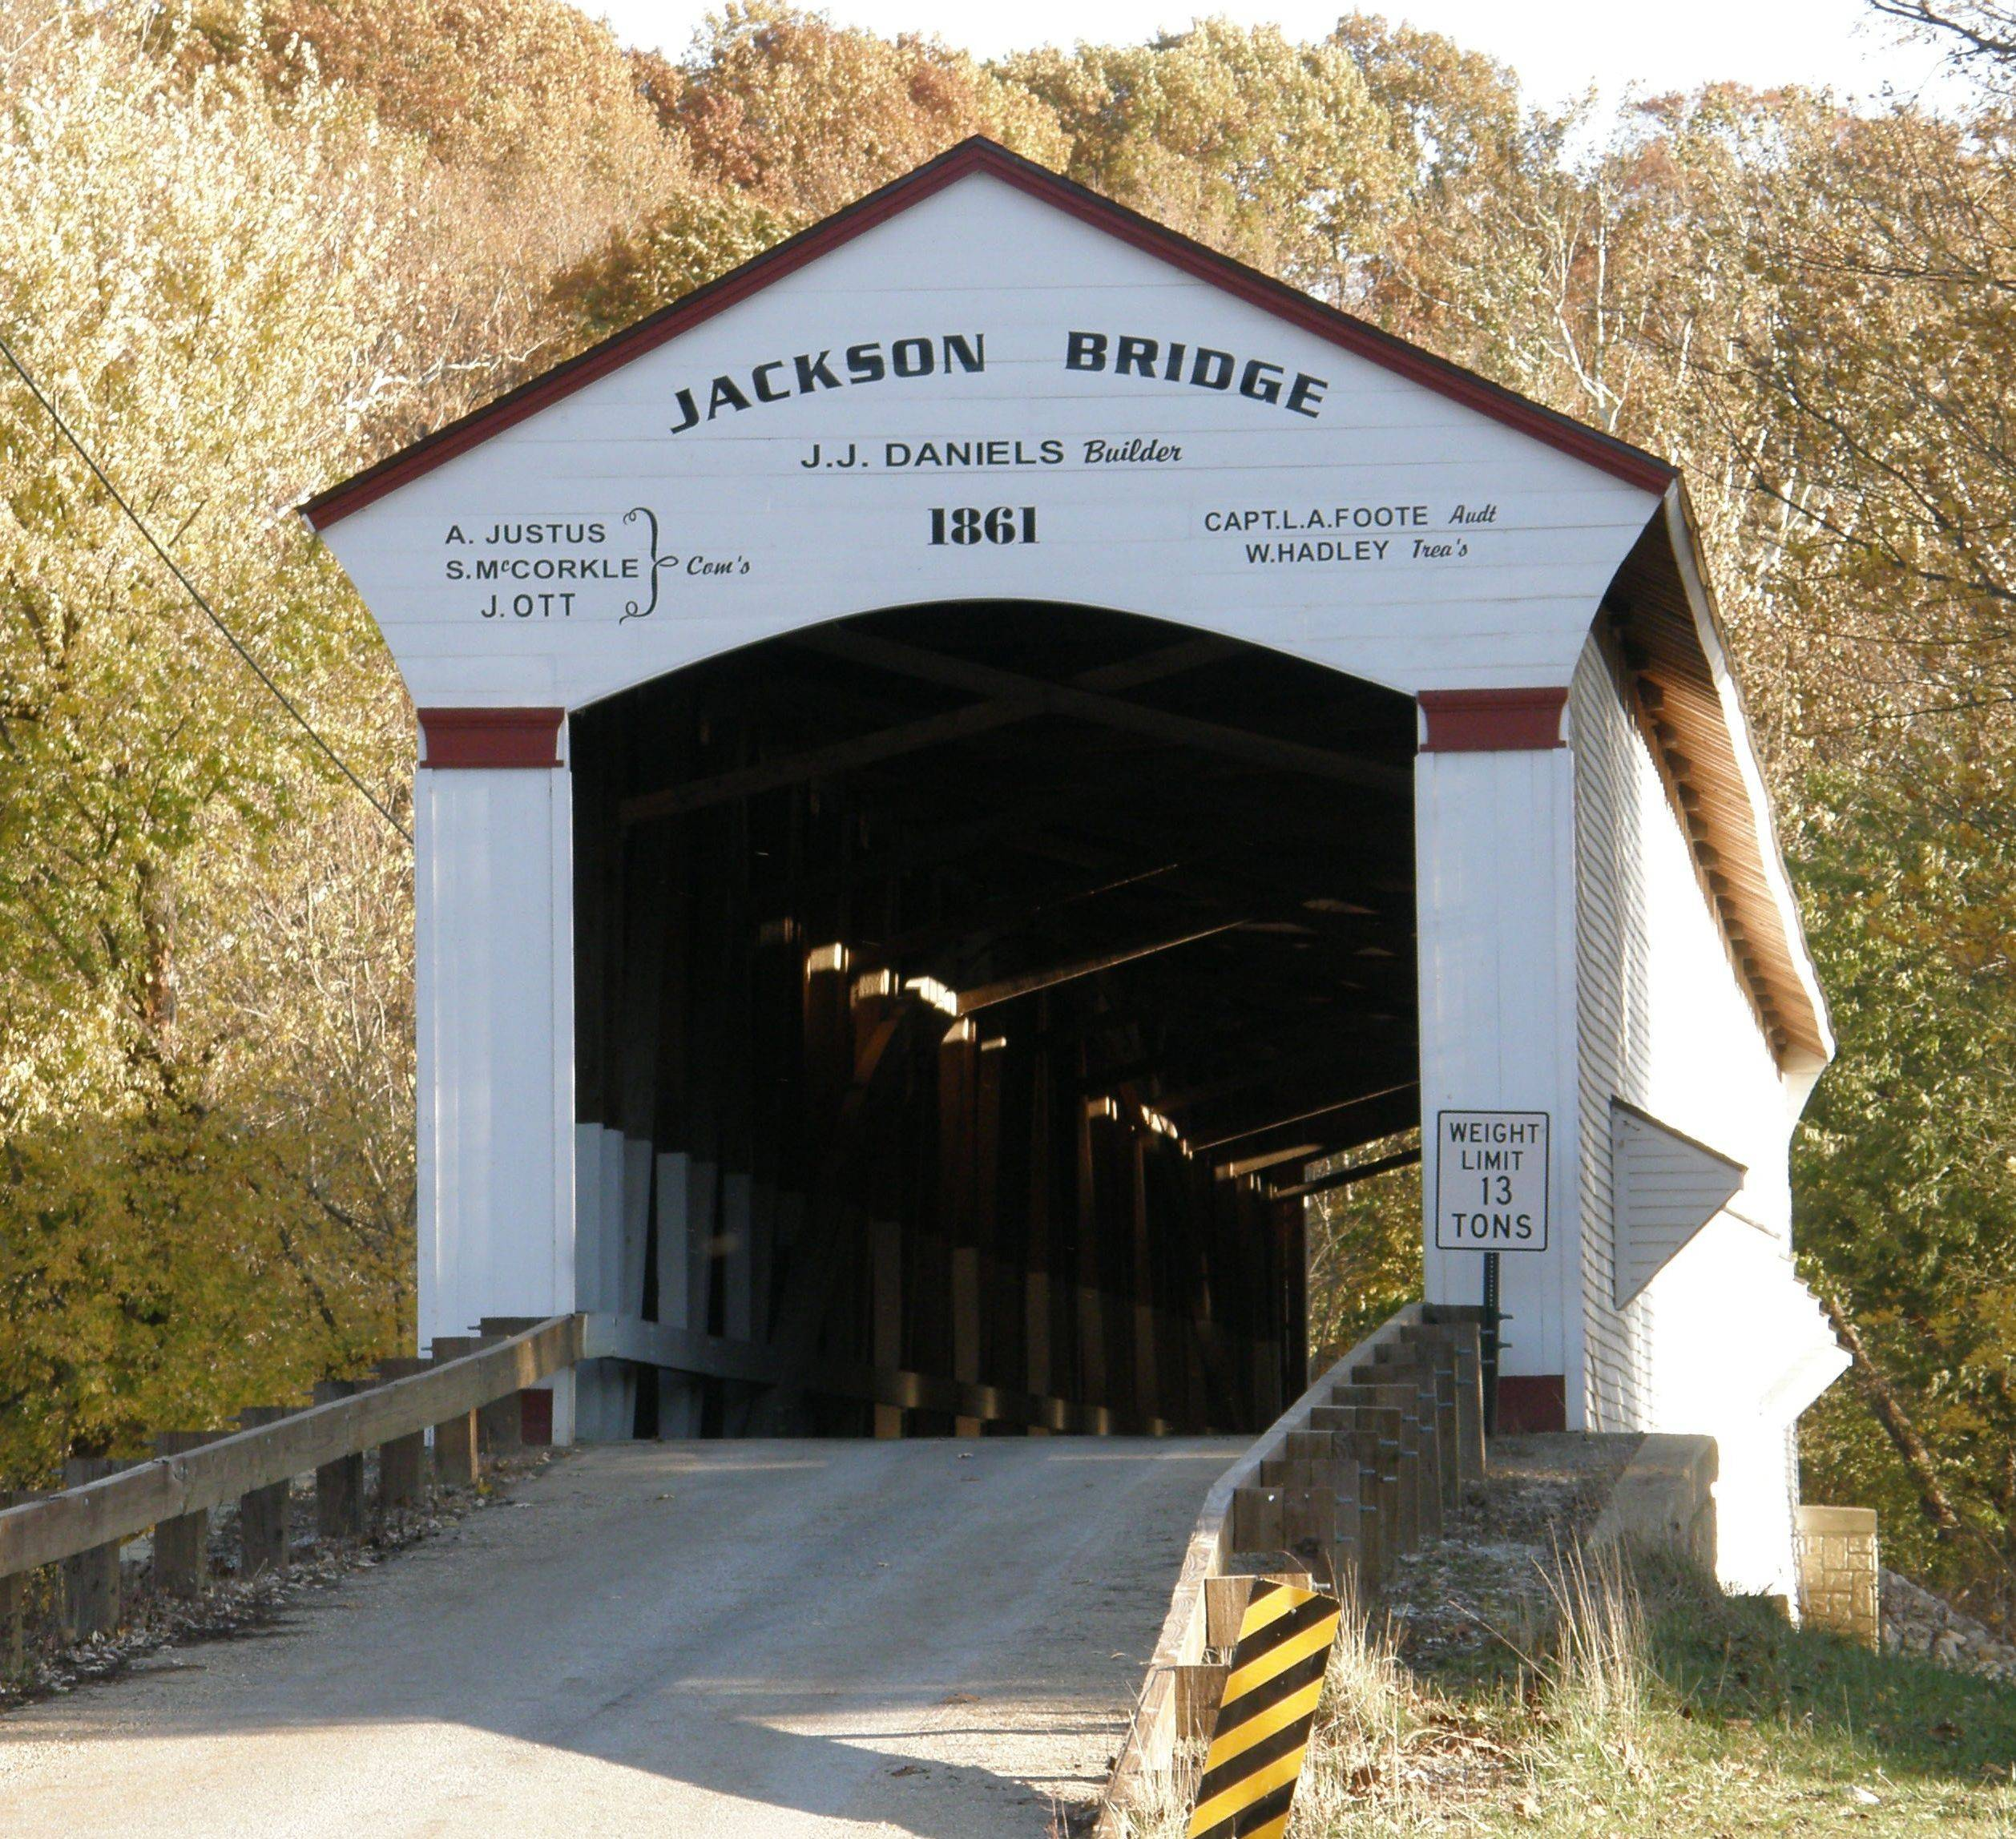 The popular Covered Bridge Festival in Rockville, Ind., will offer all kinds of attractions and activities Oct. 14-23.